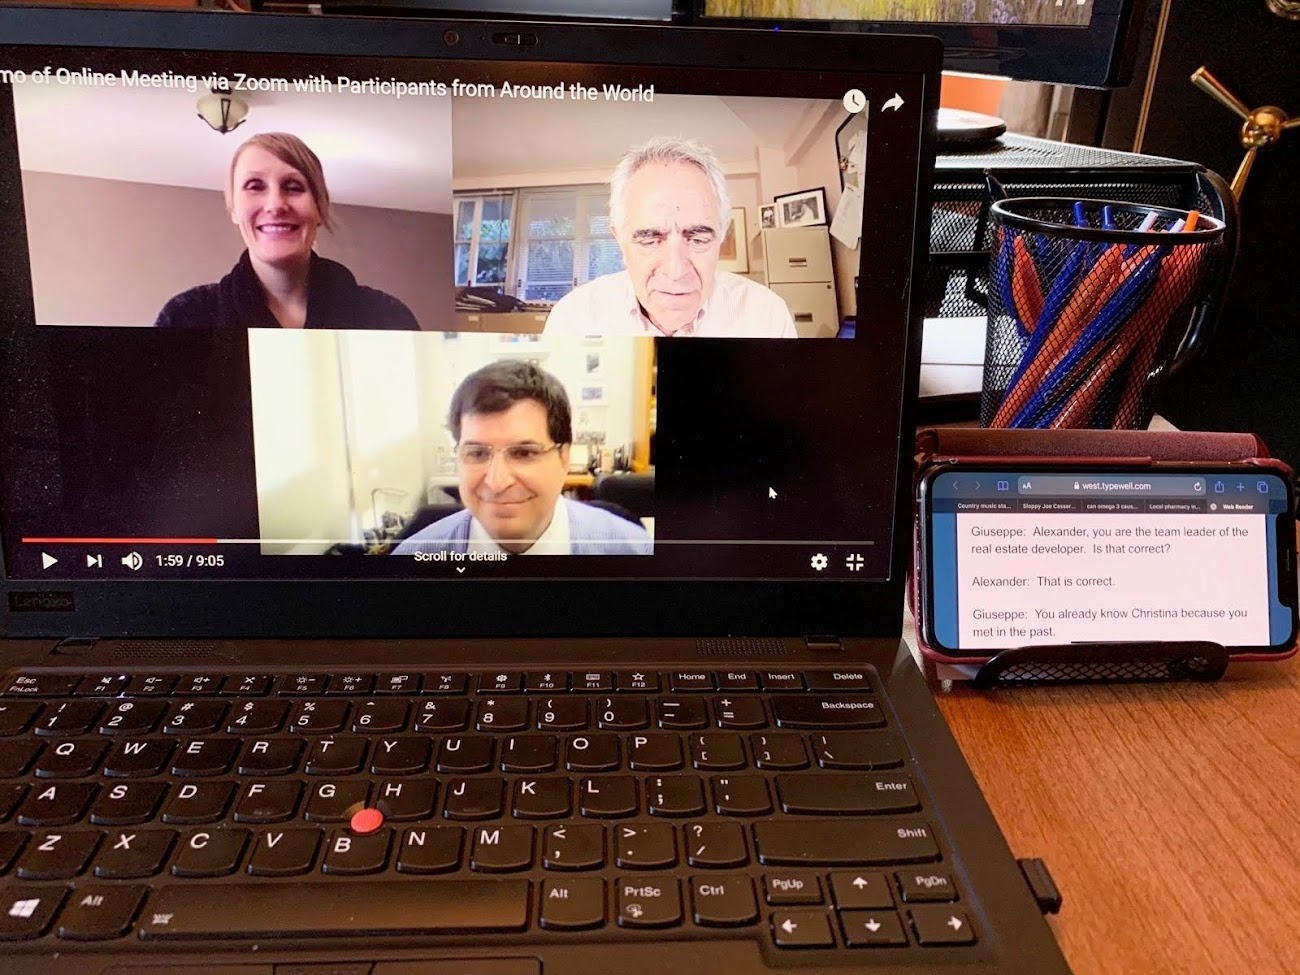 Zoom meeting on a laptop with a smartphone next to it displaying live transcript